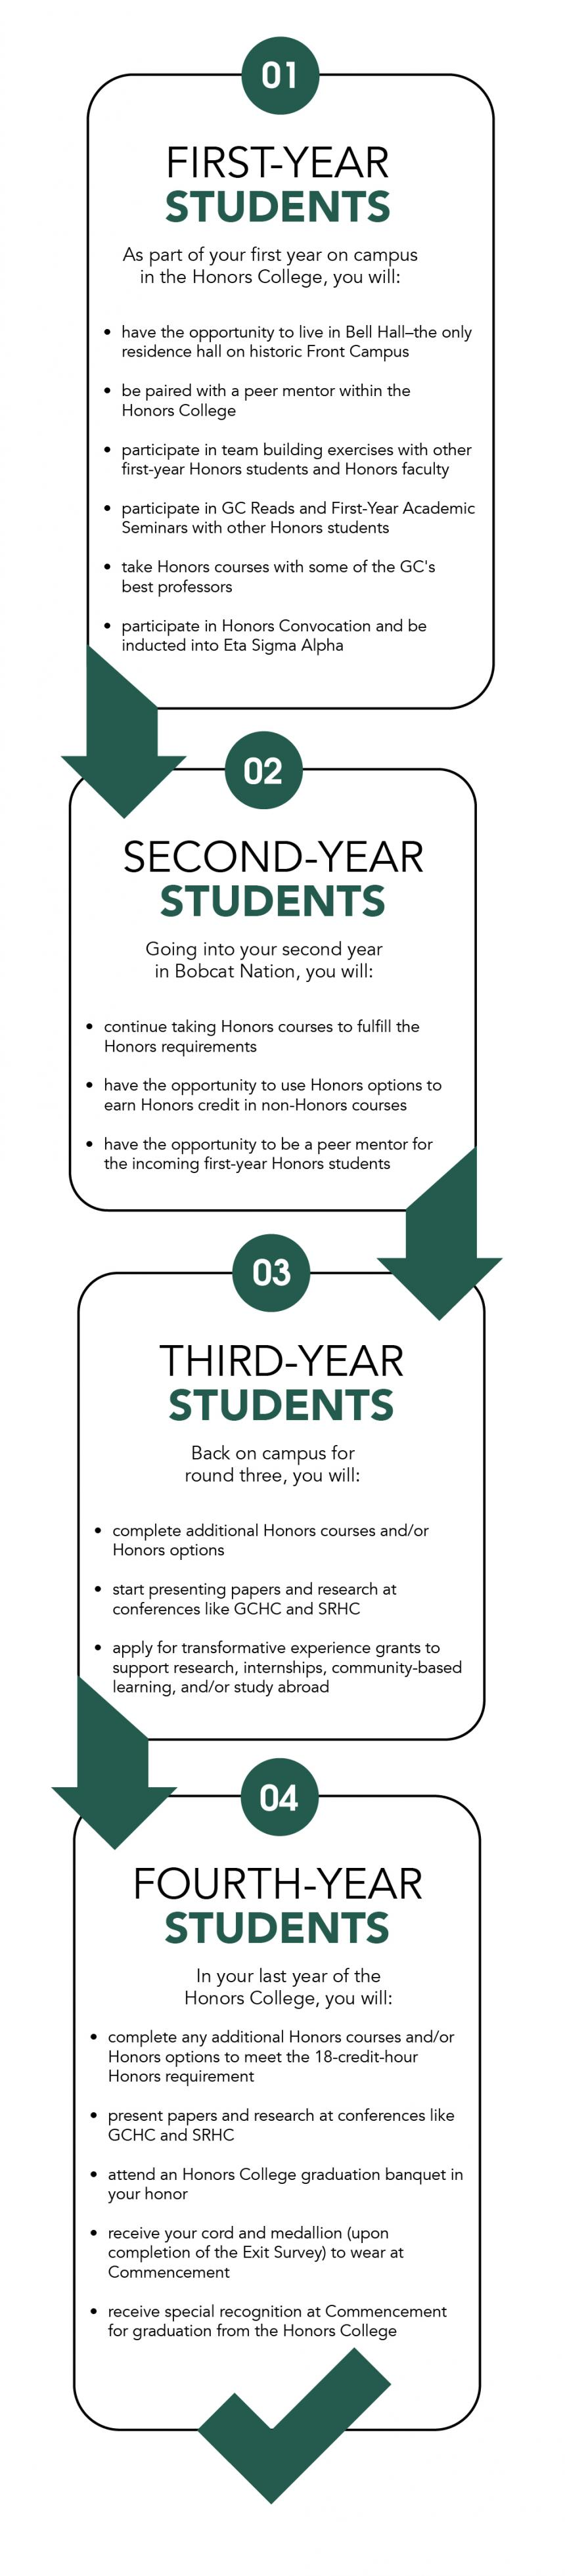 infographic for honors experience